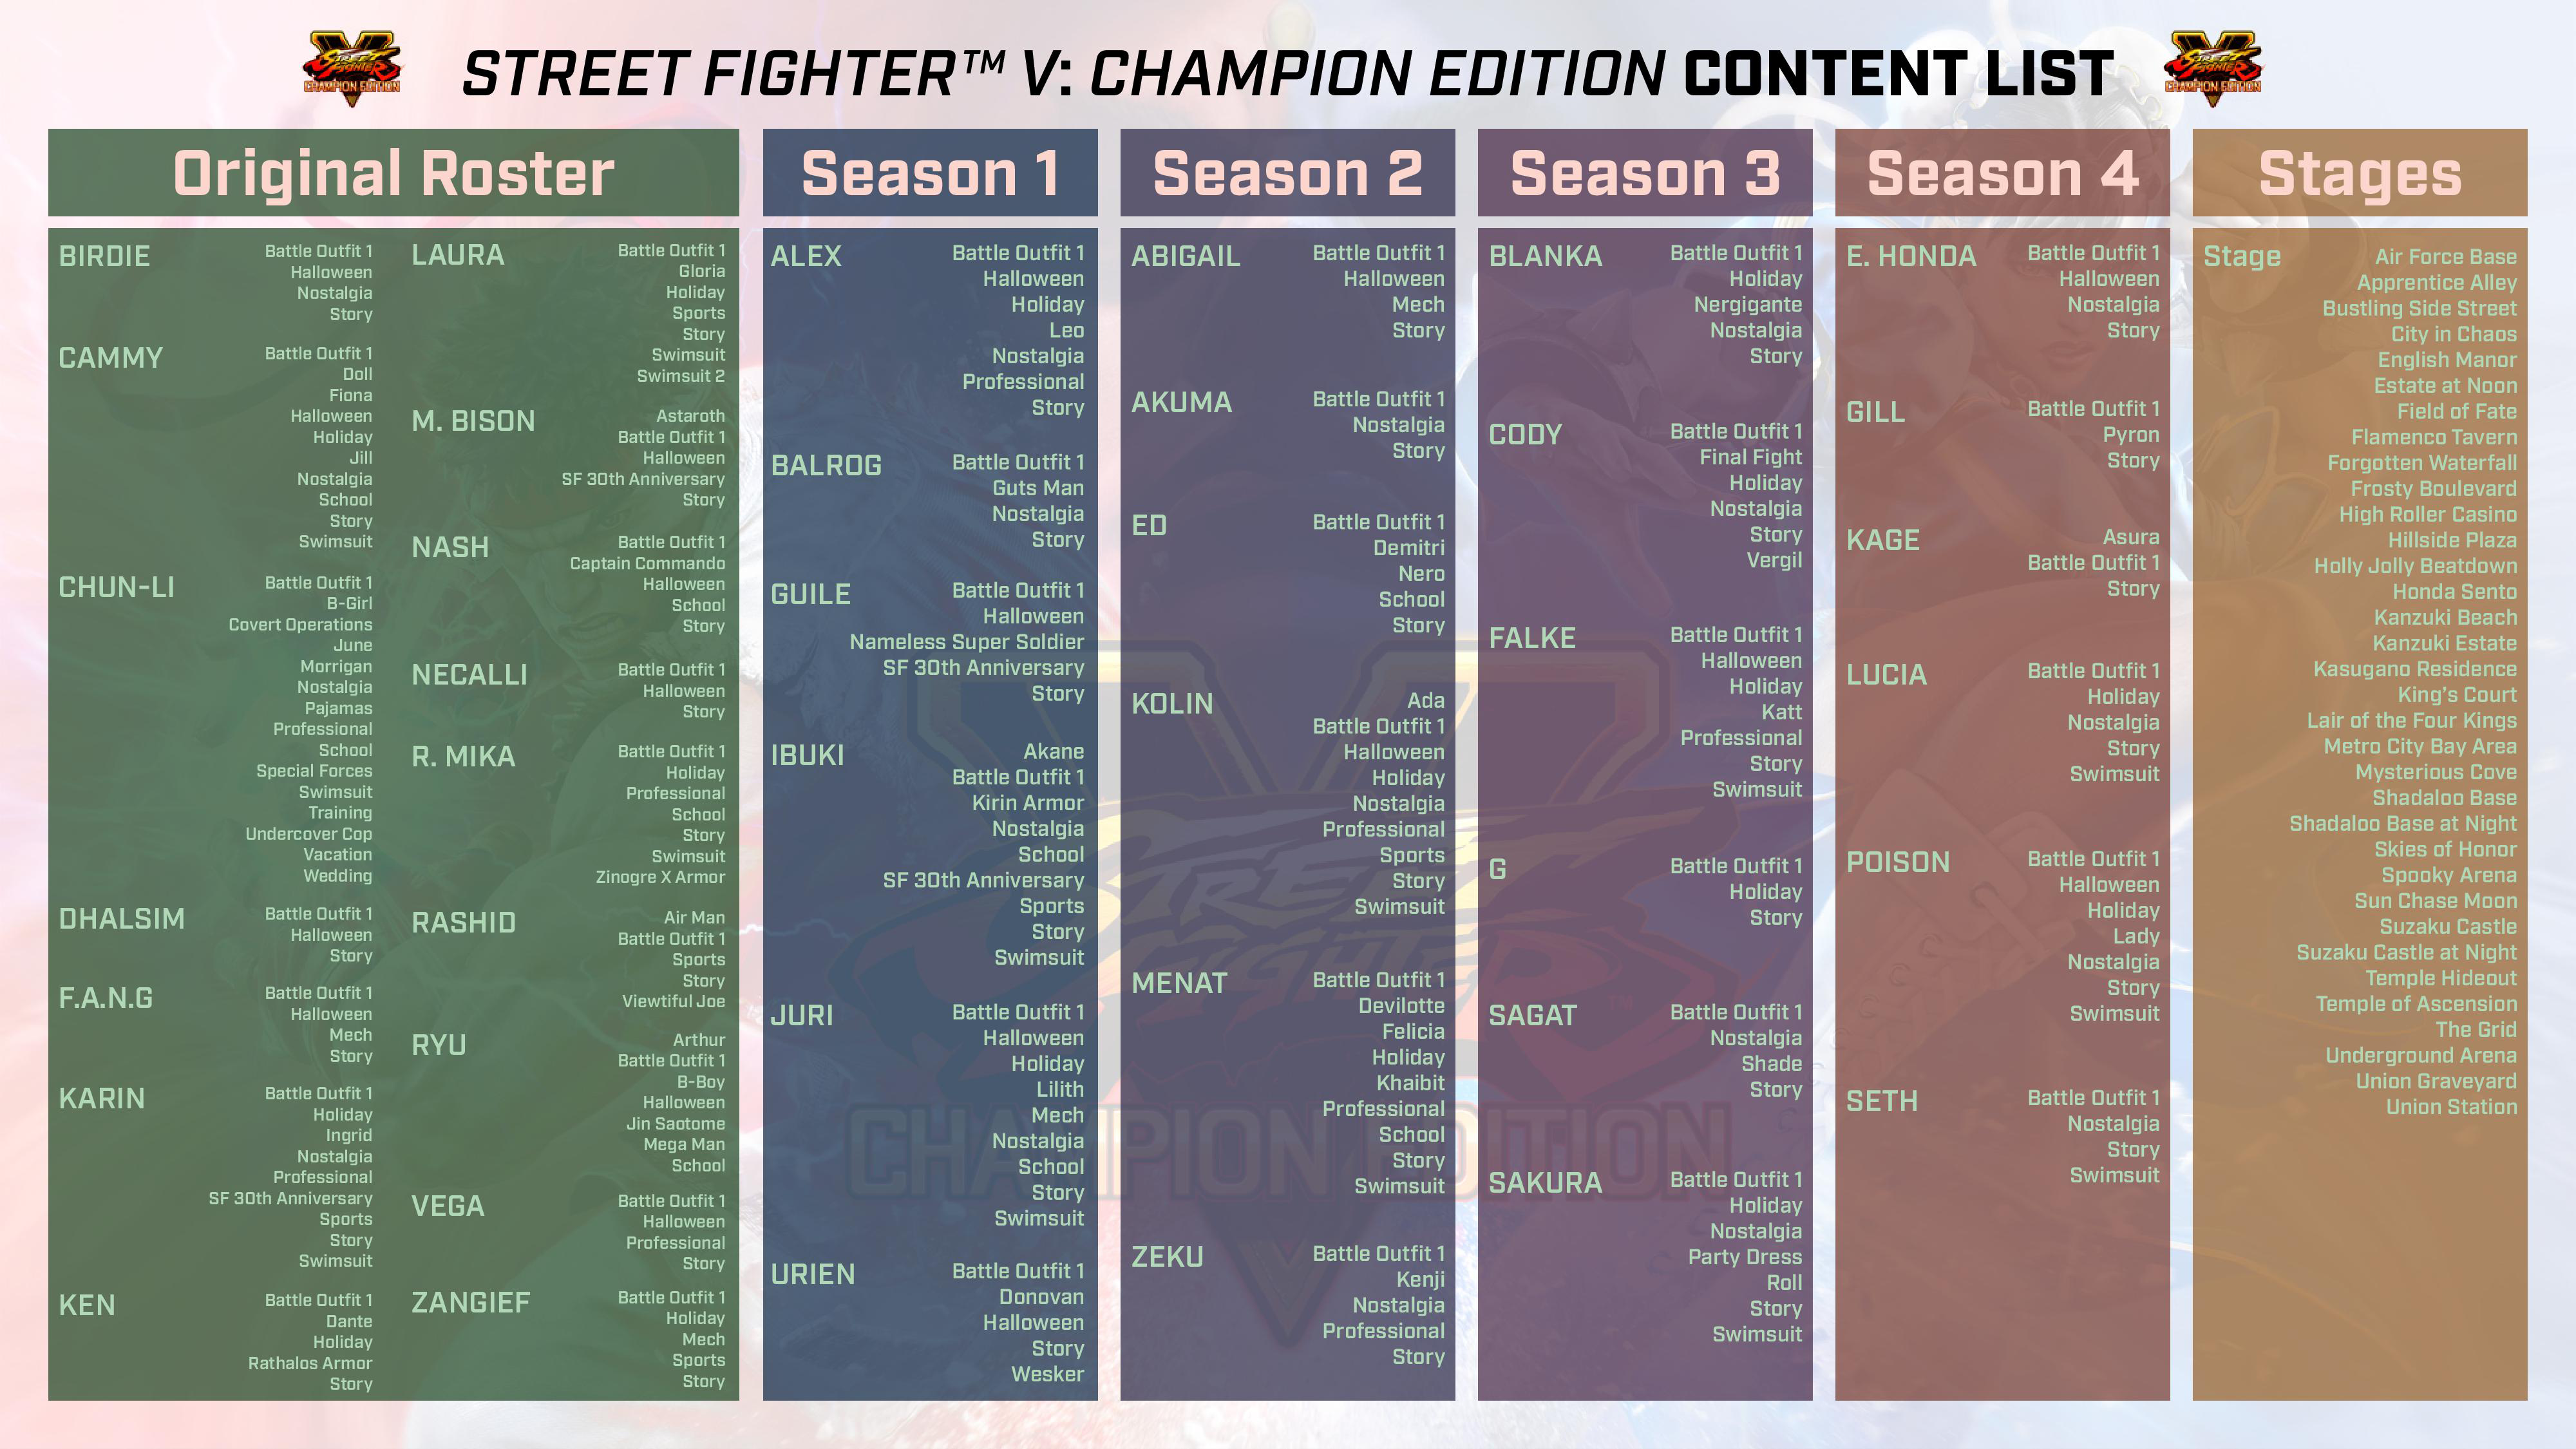 Street Fighter 5: Champion Edition contents 9 out of 9 image gallery